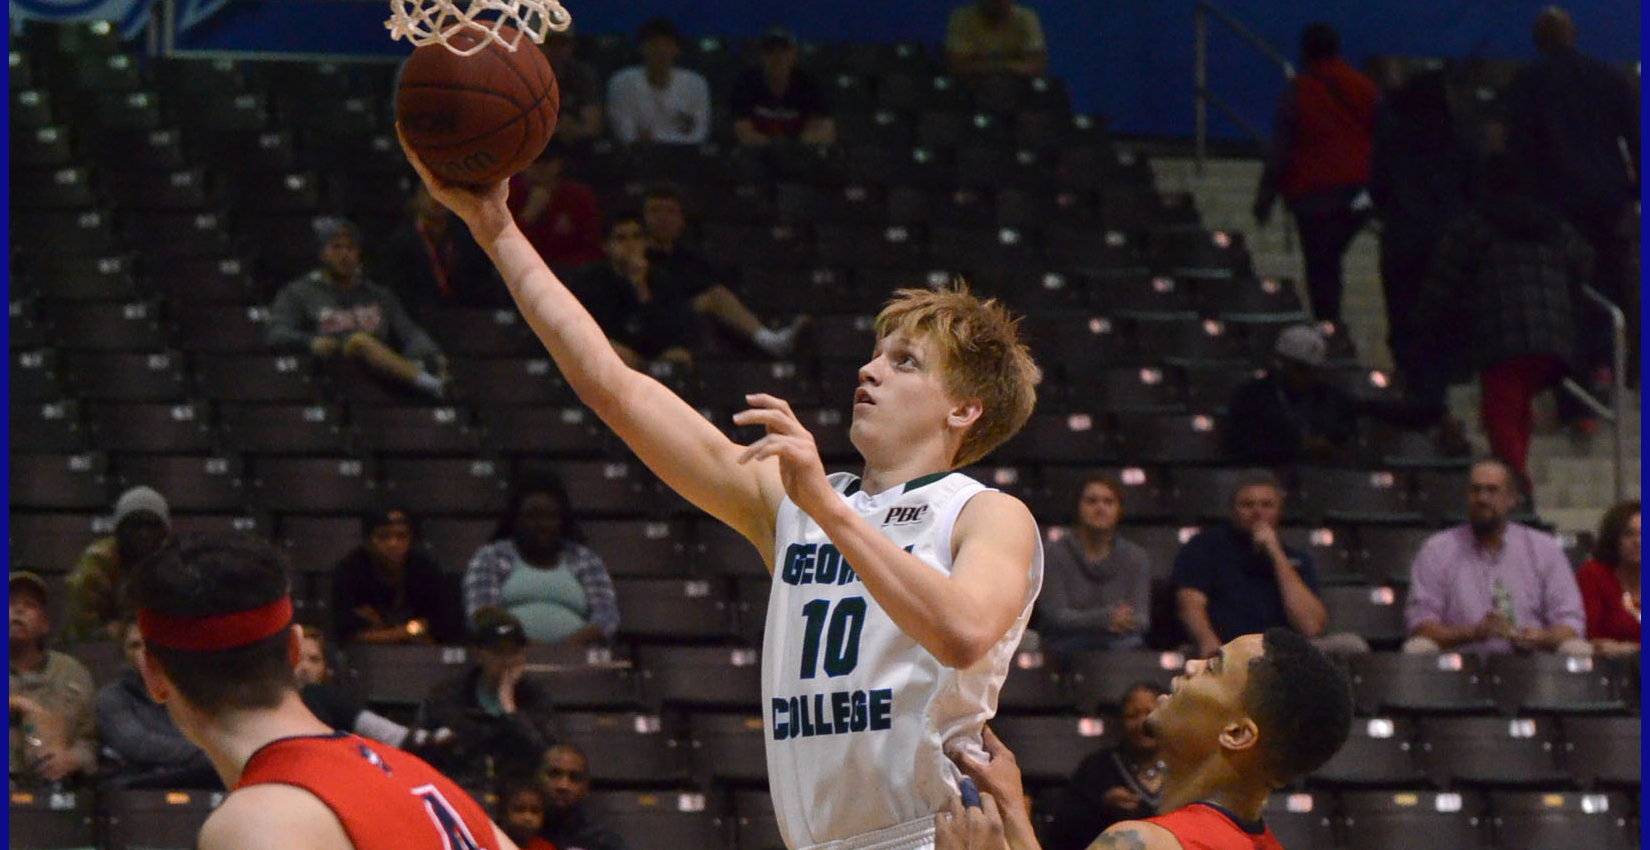 Georgia College's Thomas Selected to PBC All-Academic Men's Basketball Team